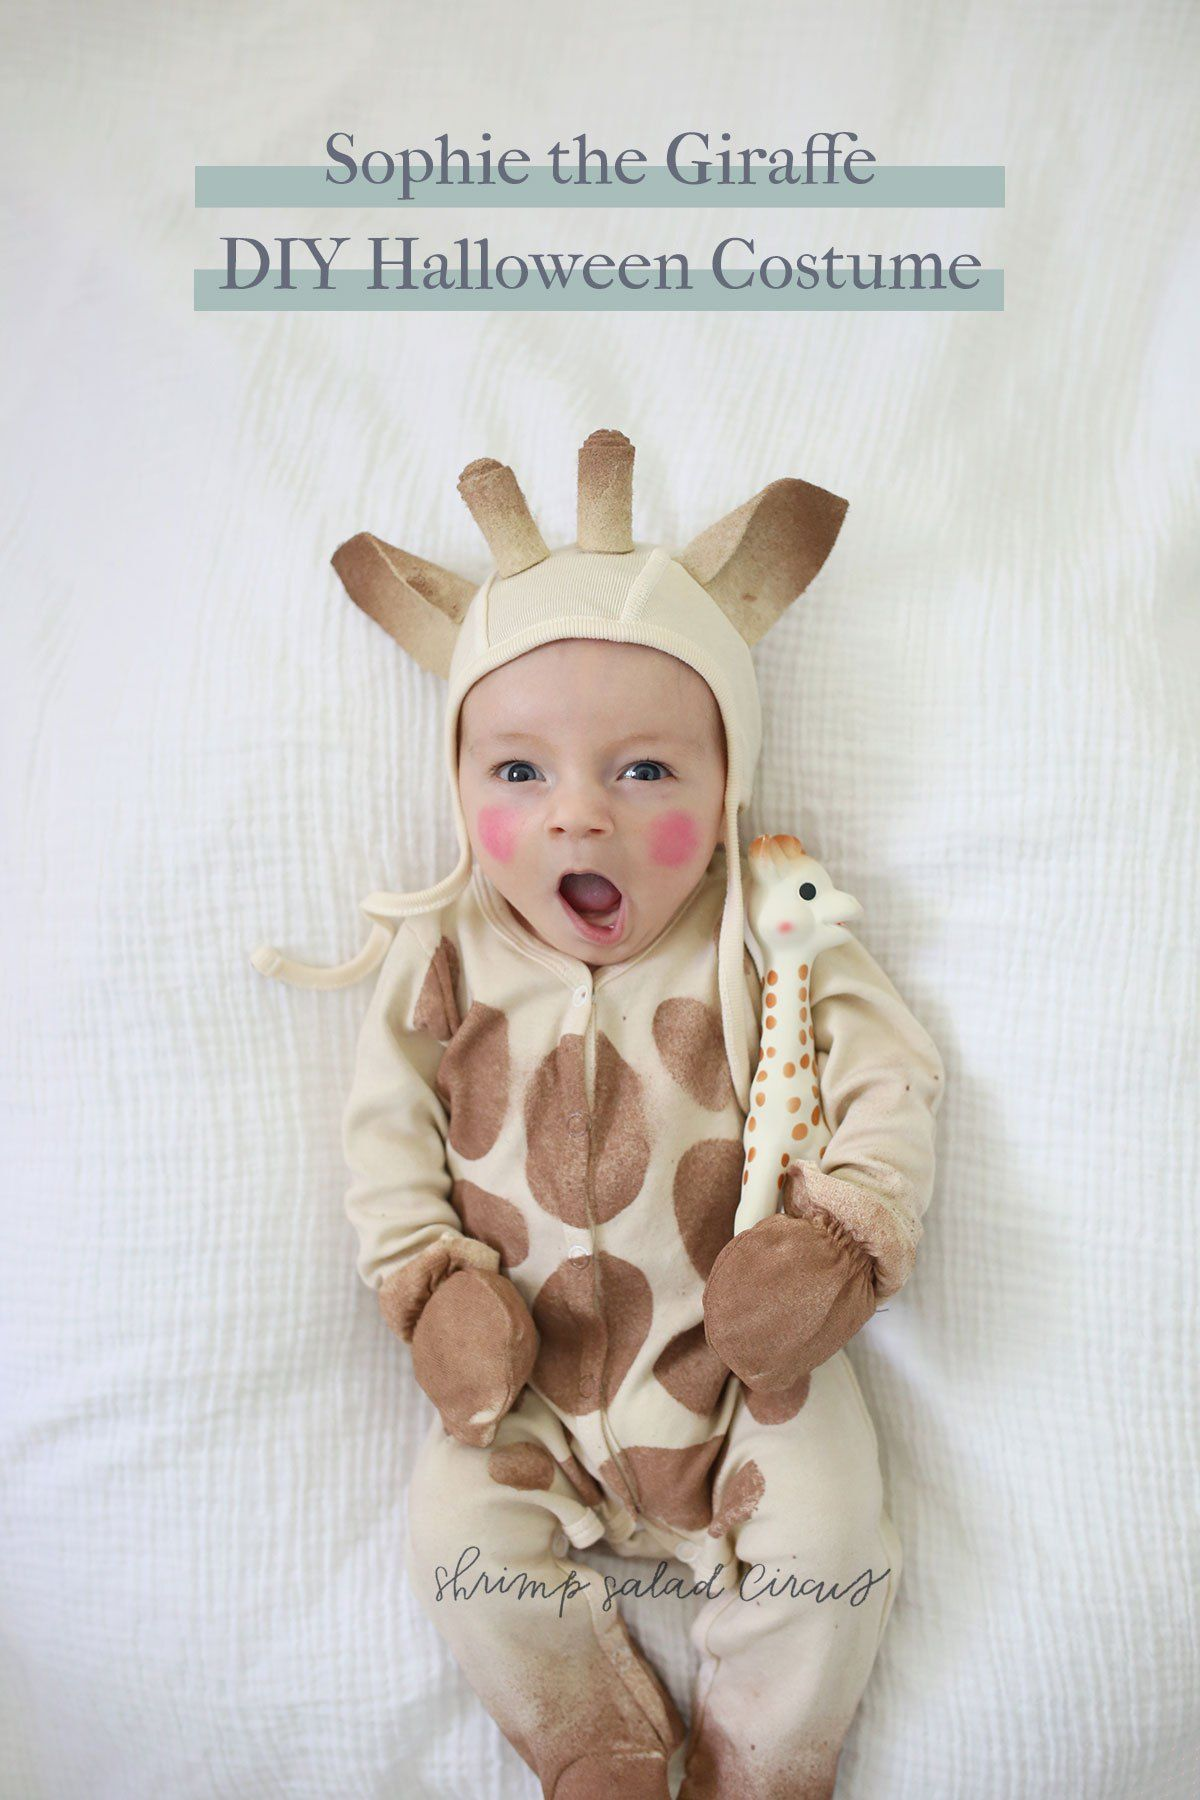 diy sophie the giraffe baby halloween costume idea this tutorial includes supplies available on amazon prime for last minute halloween costumes for kids